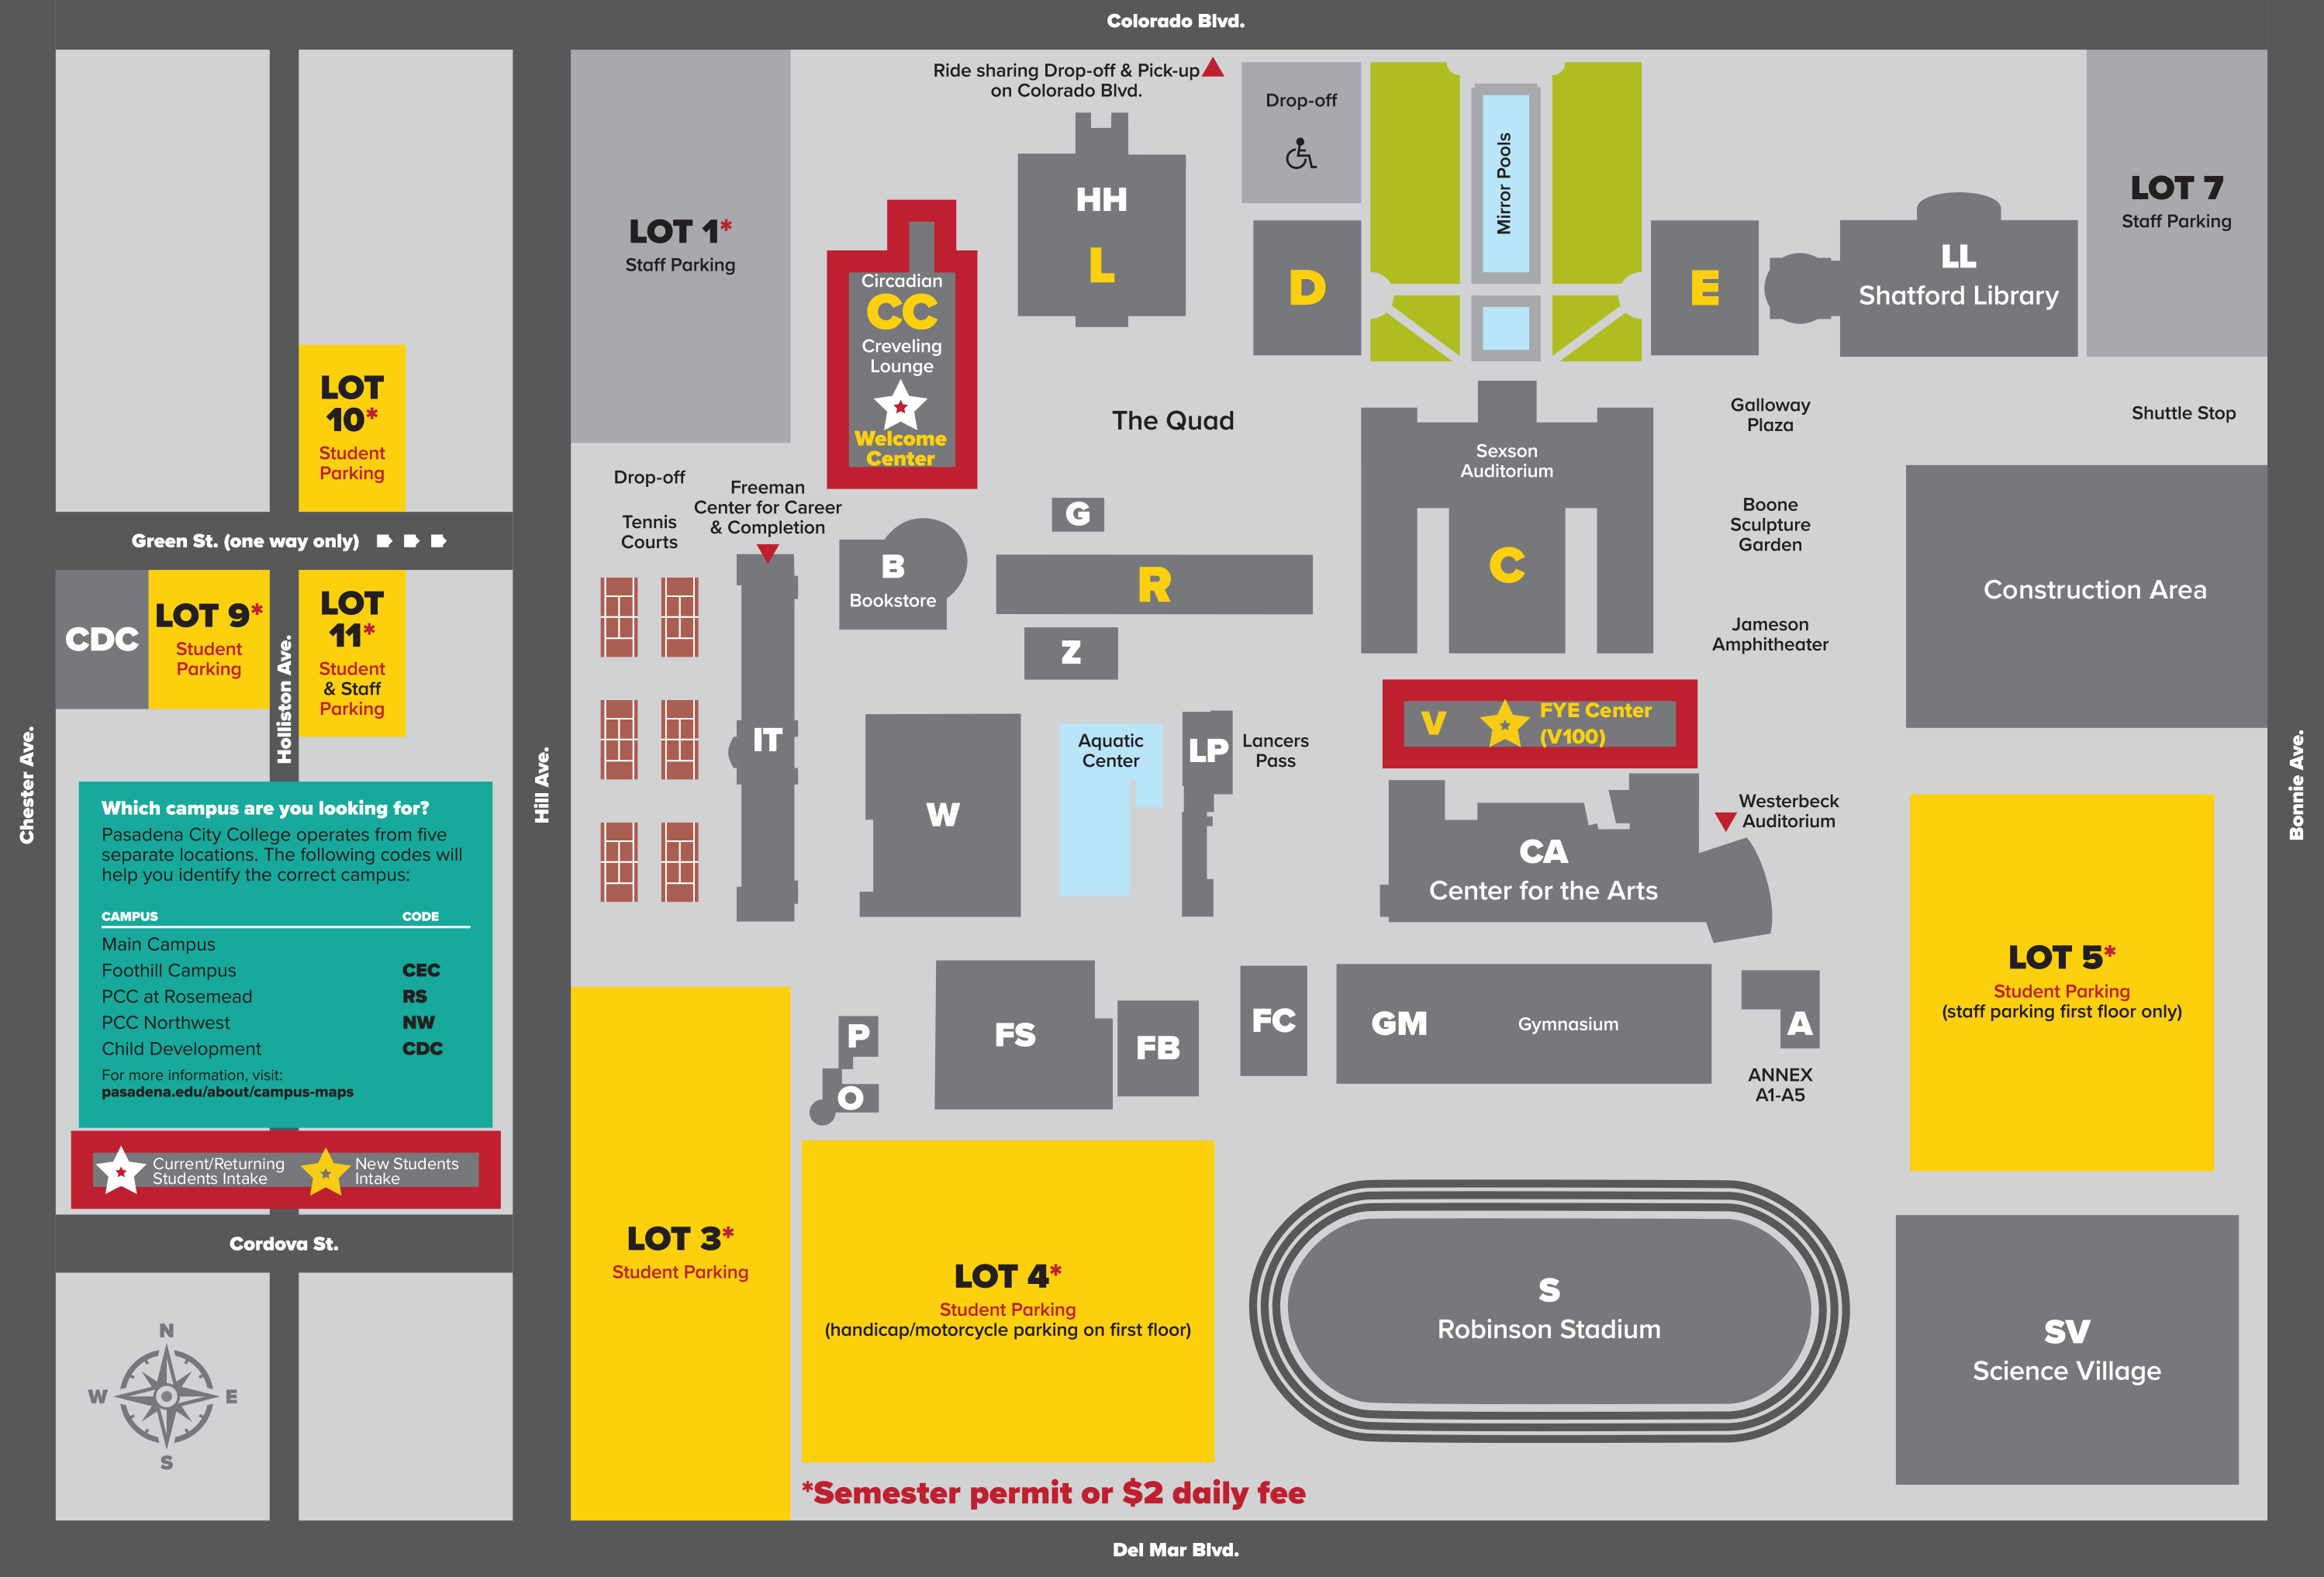 Download the Campus Map